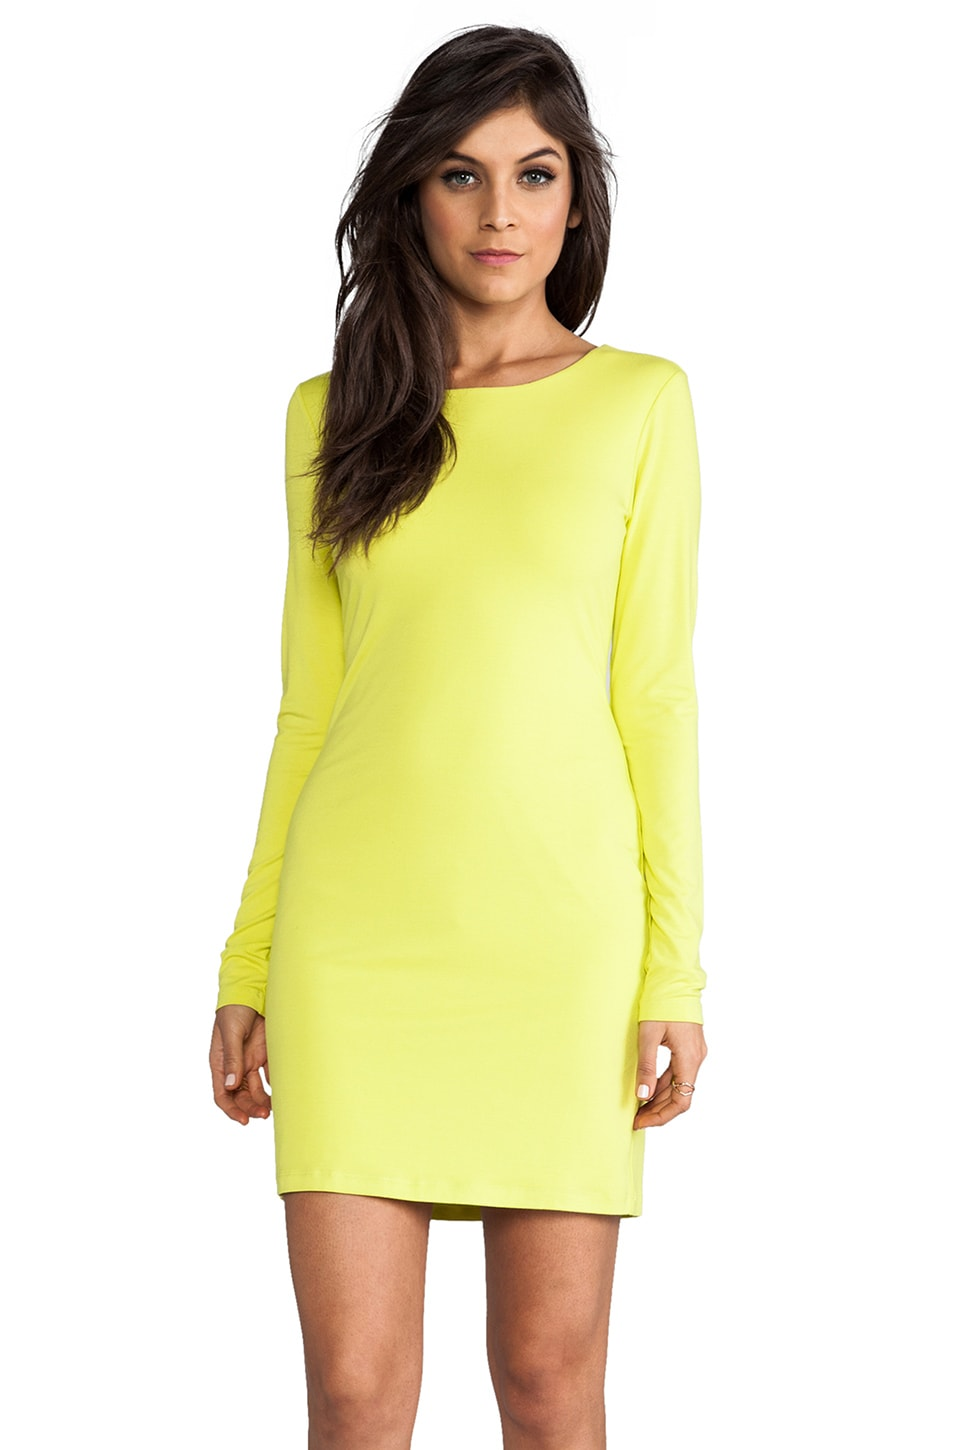 Velvet by Graham & Spencer Lily Aldridge for Velvet Beki Rayon Jersey Dress in Lime